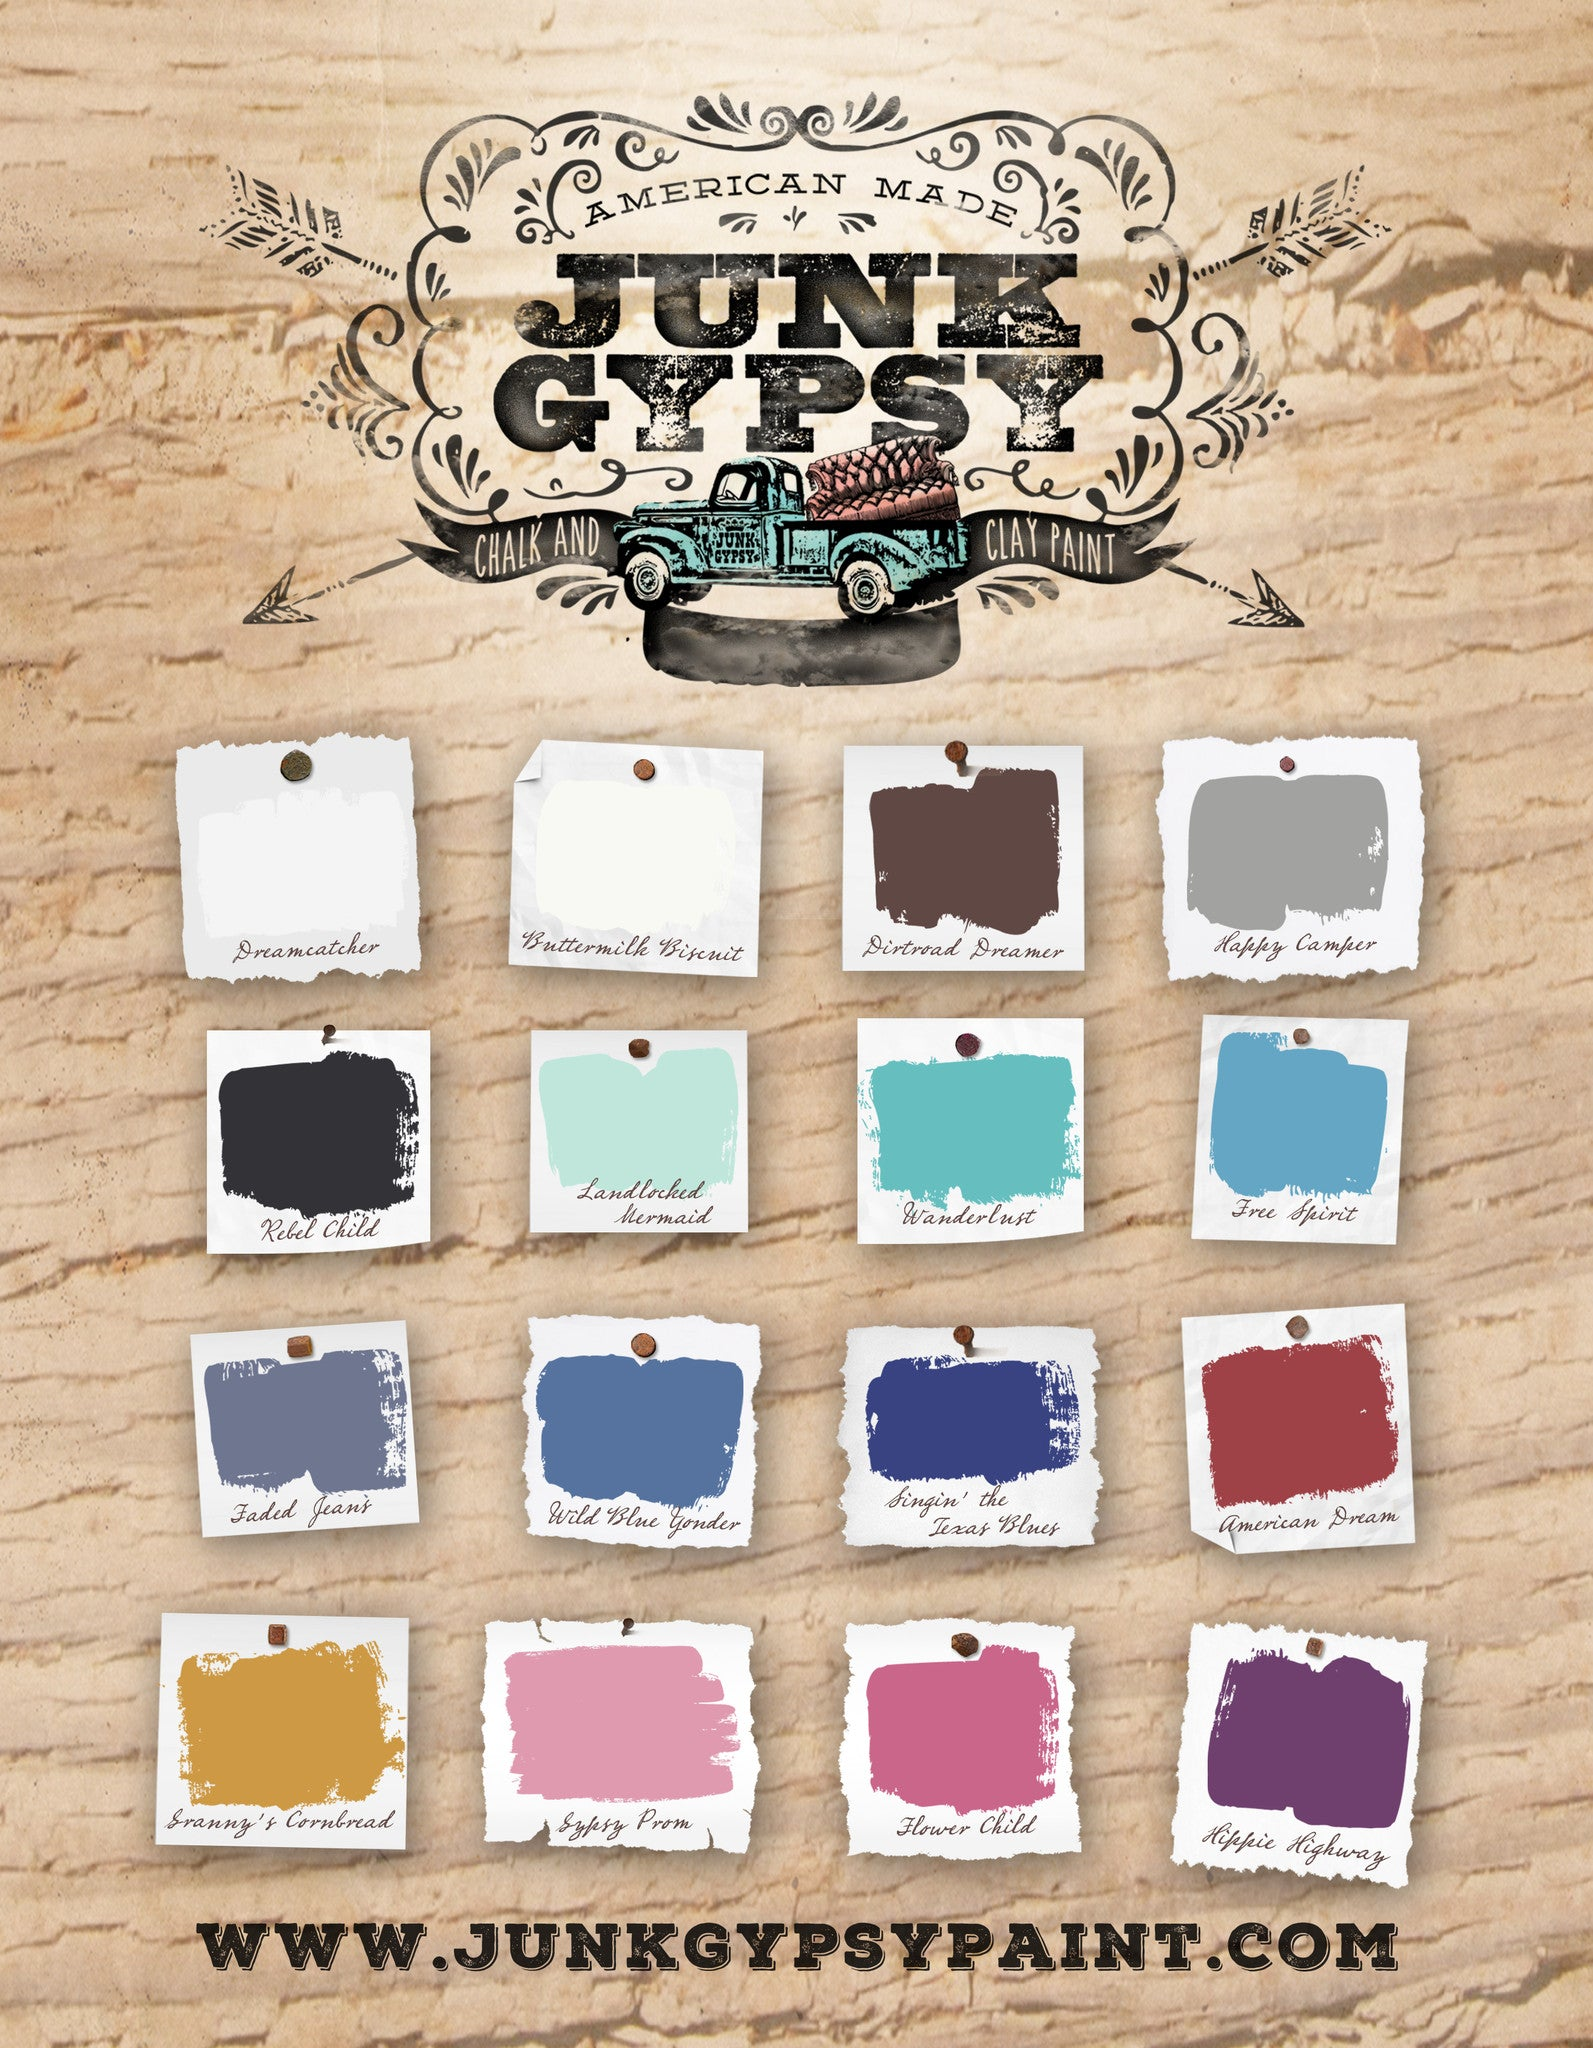 Junk Gypsy Paint - Free Spirit - 8oz - Chalk and Clay Paint